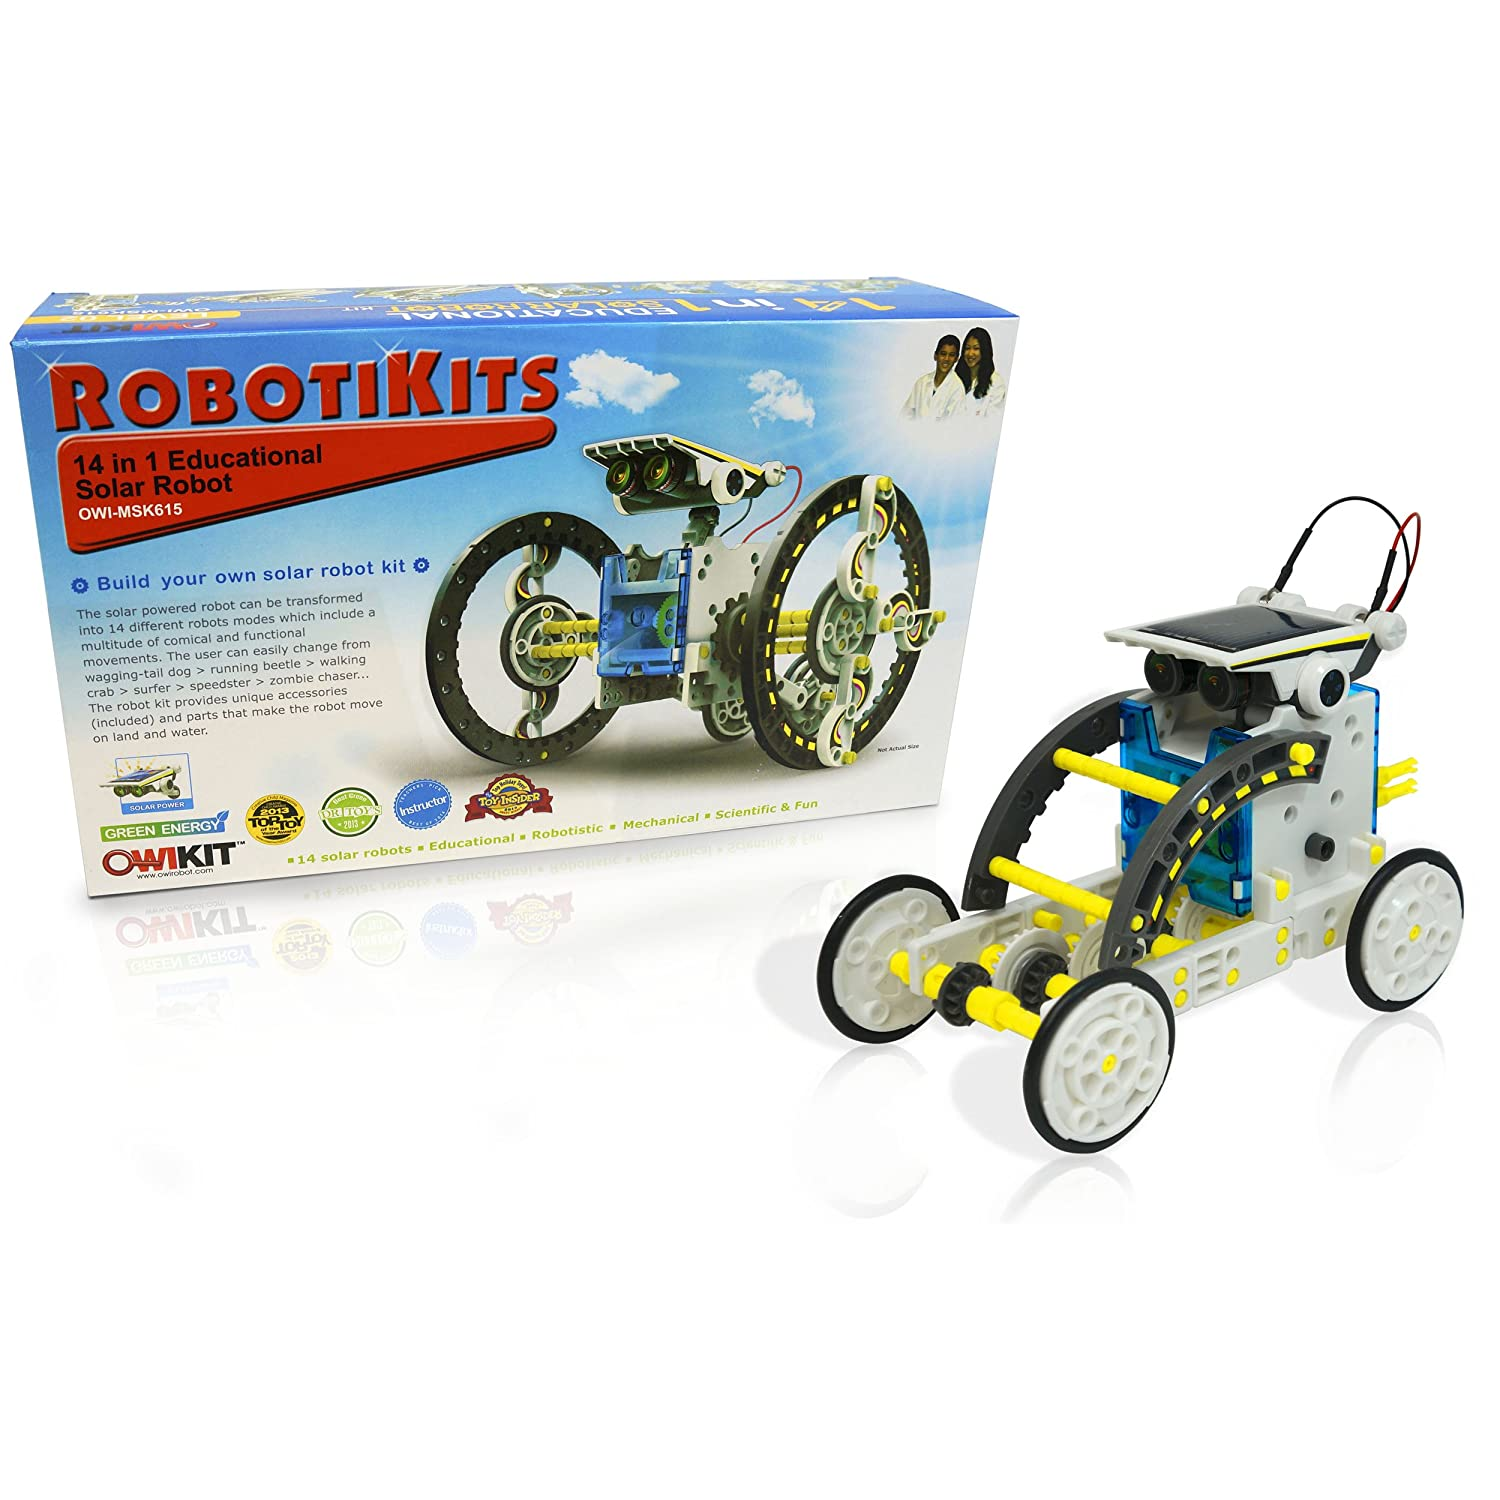 robot kit with constructed robot on wheels